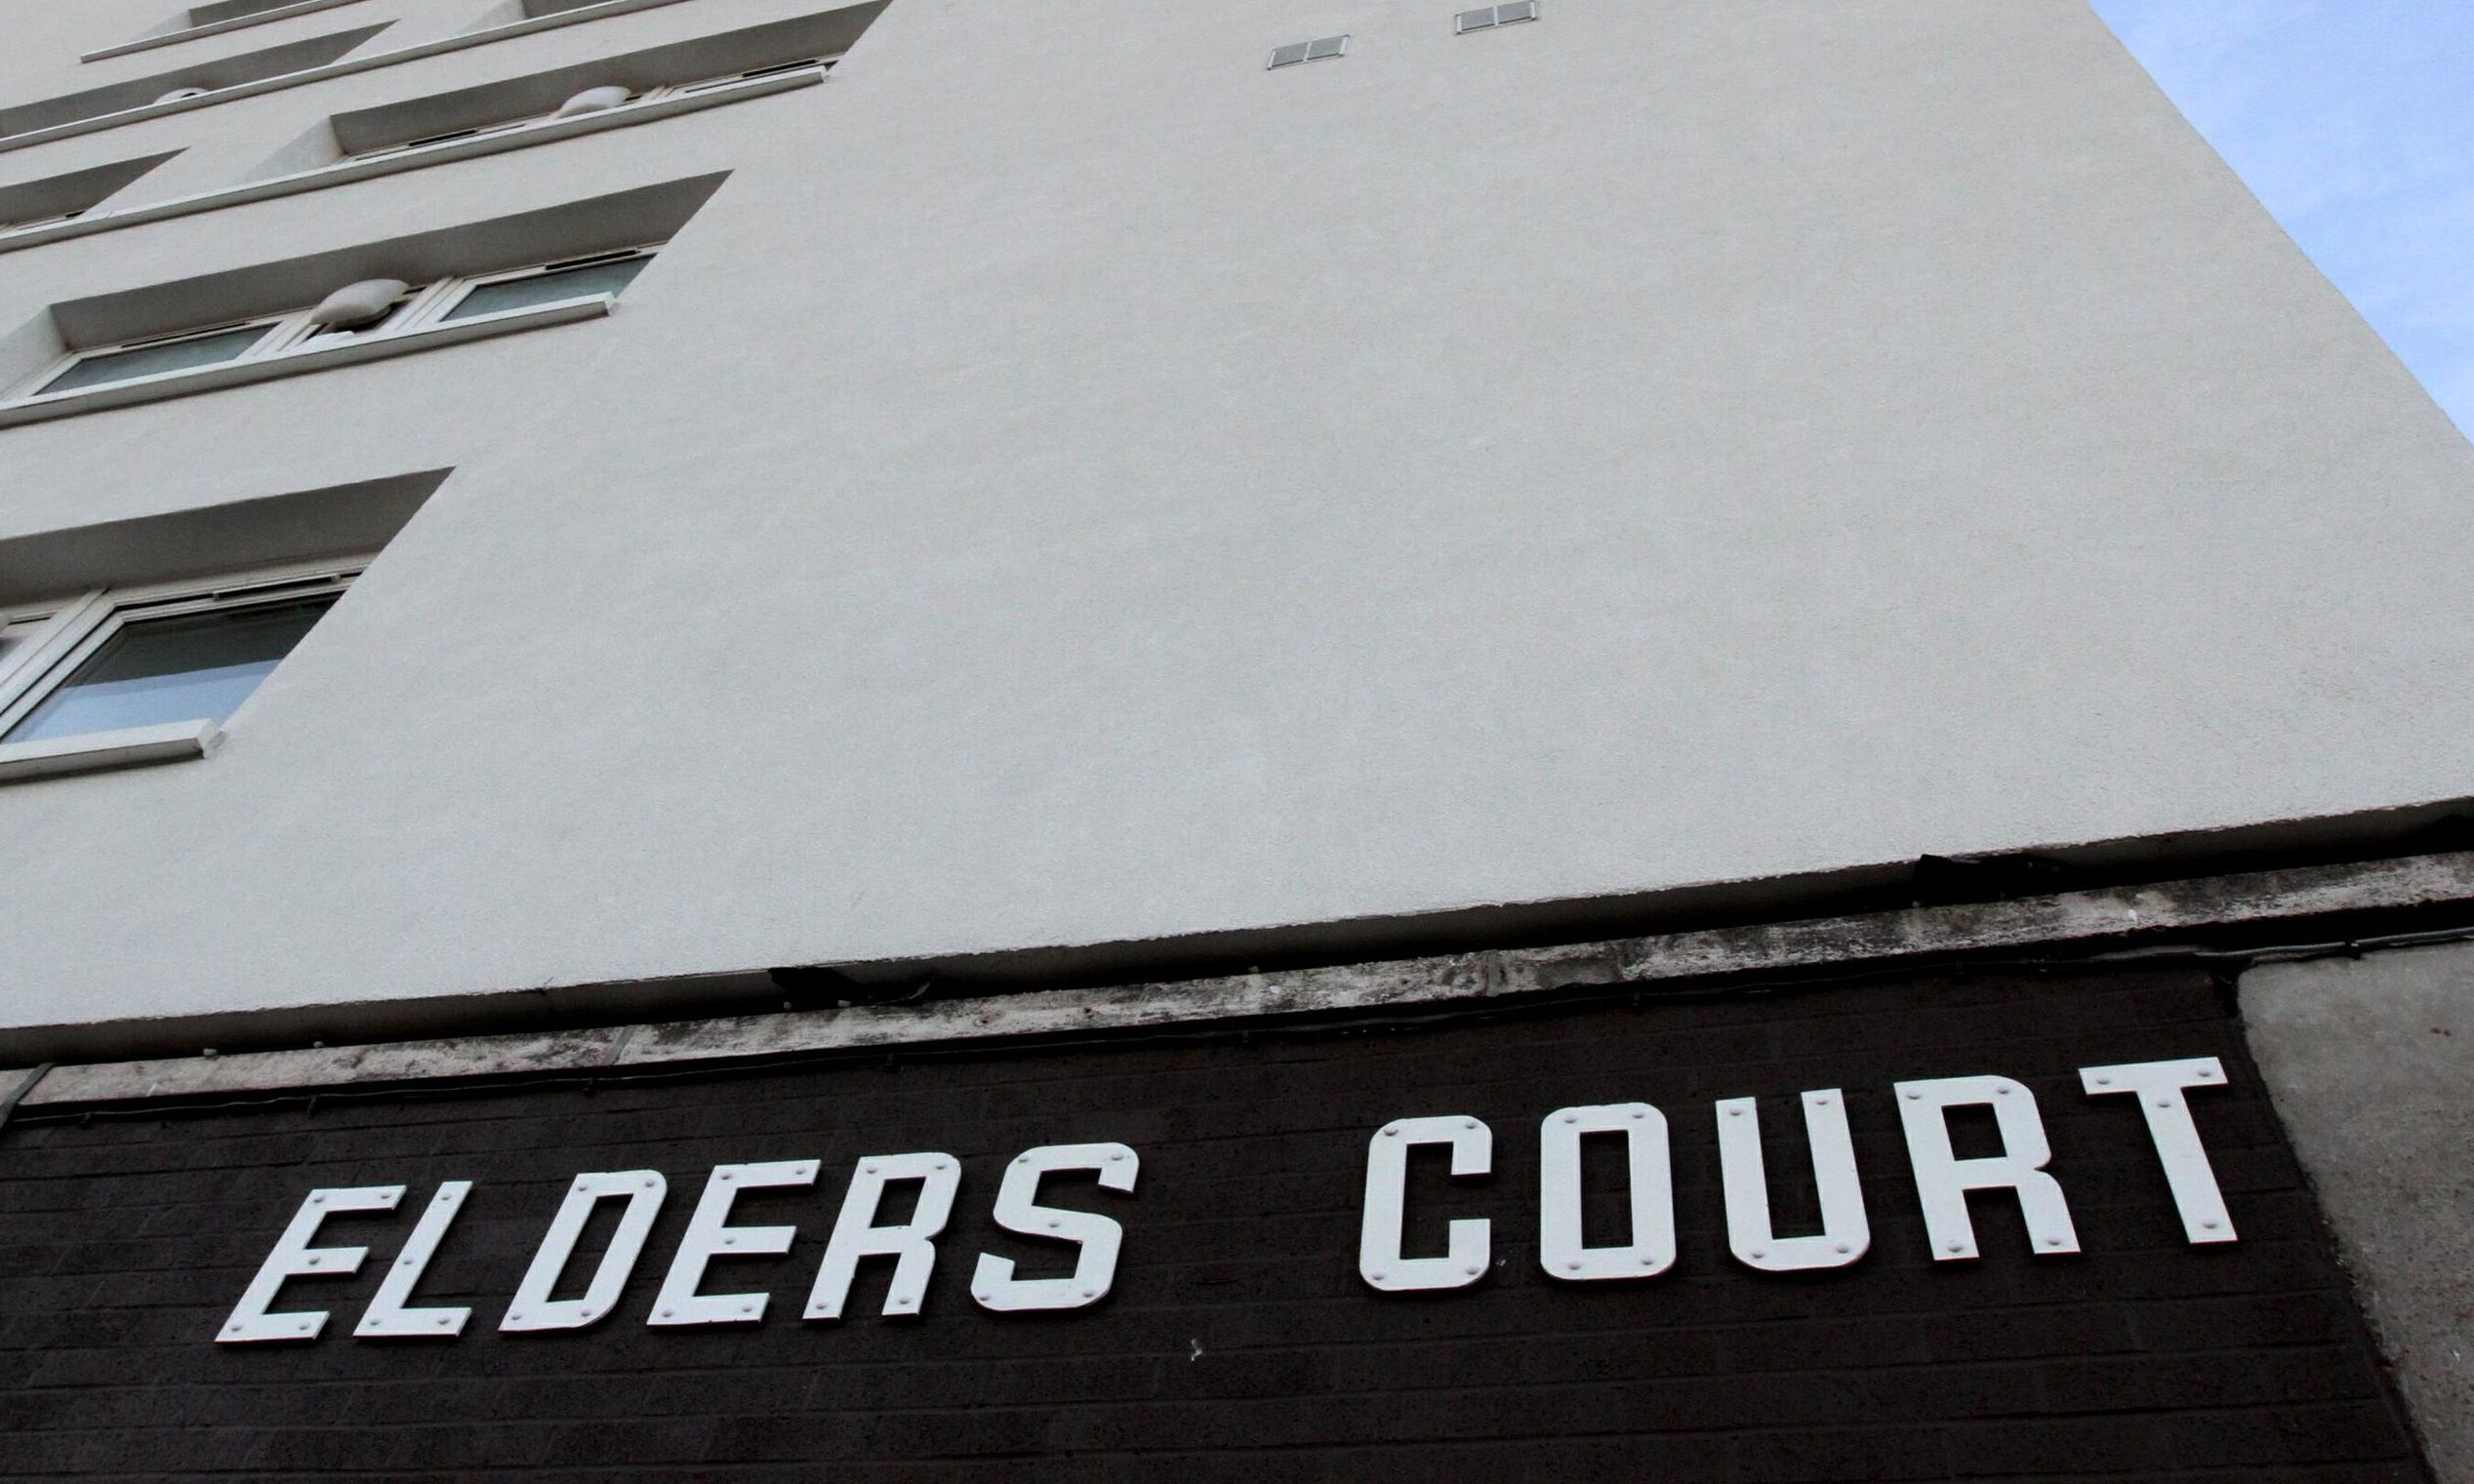 Elders Court, Lochee.